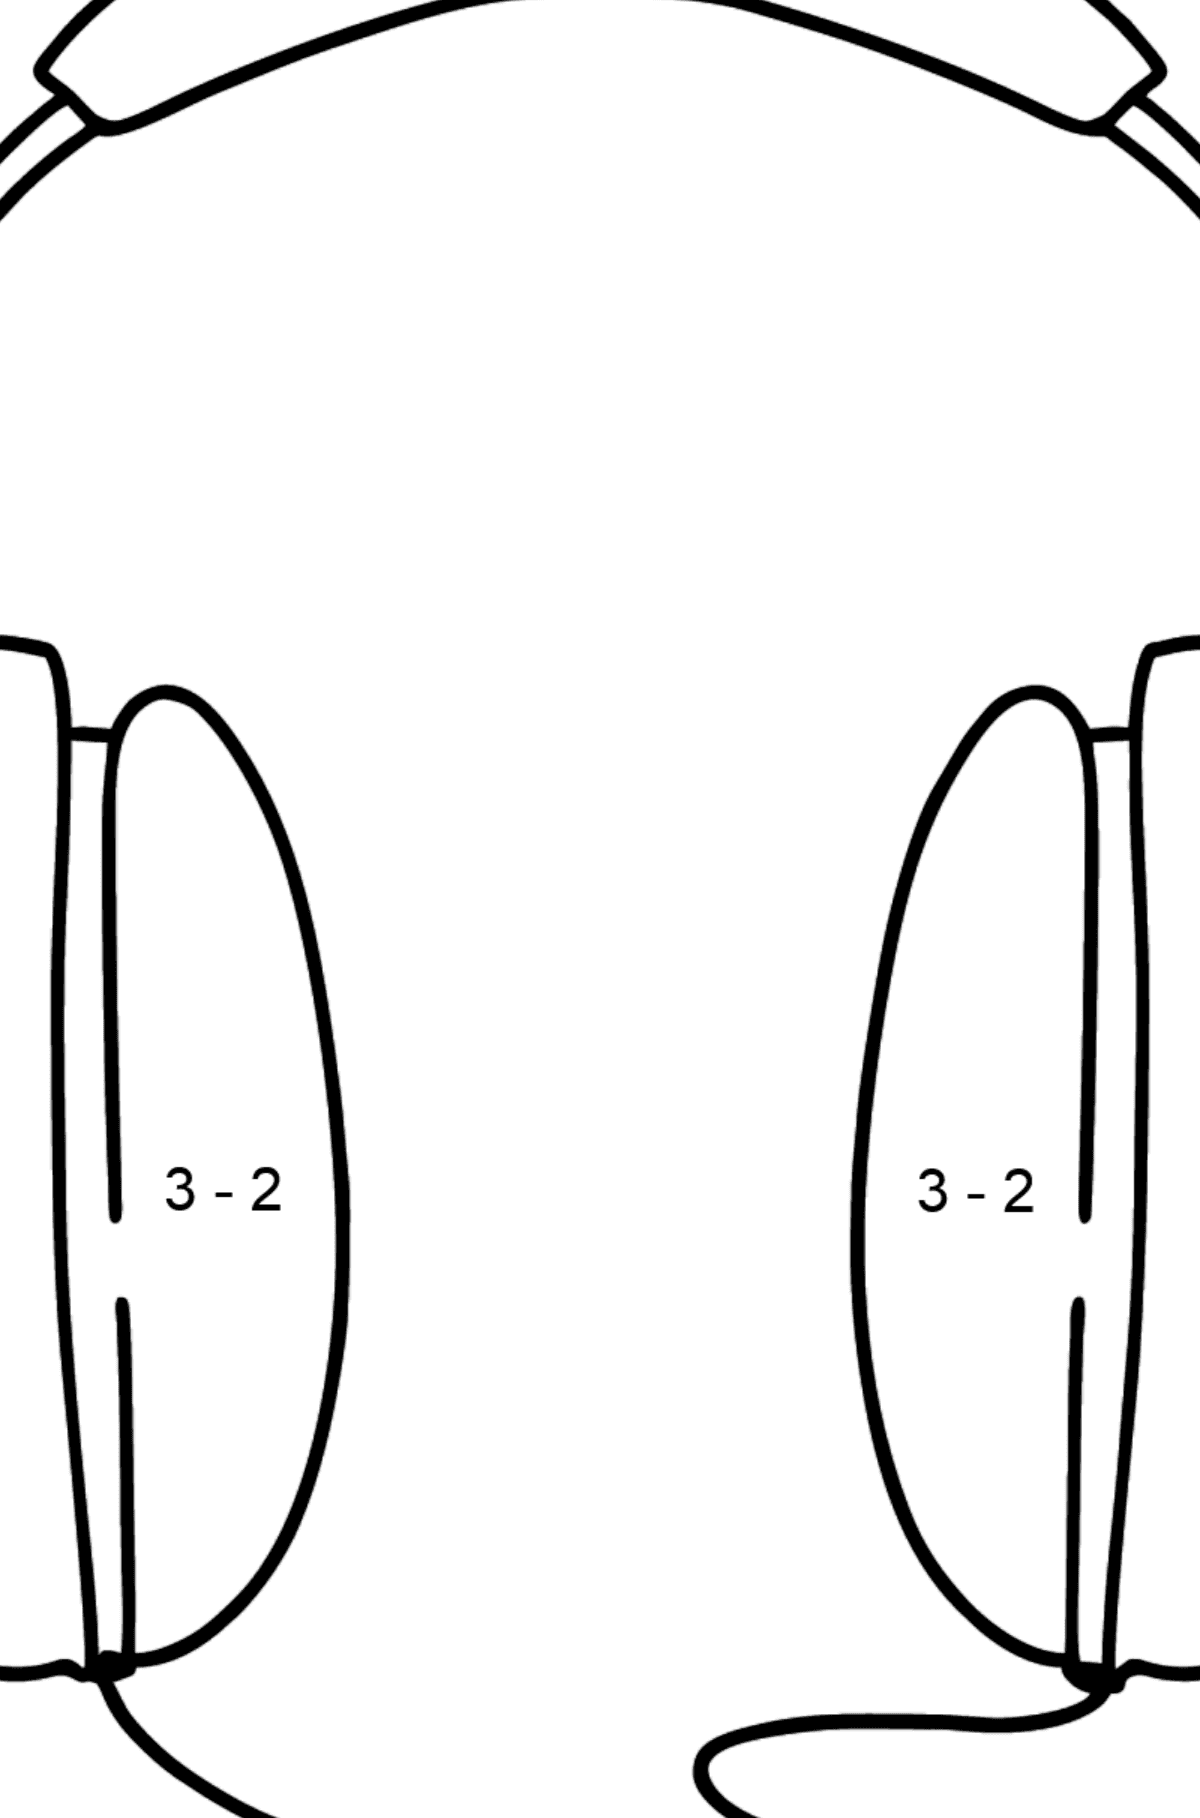 Headphones coloring page - Math Coloring - Subtraction for Kids